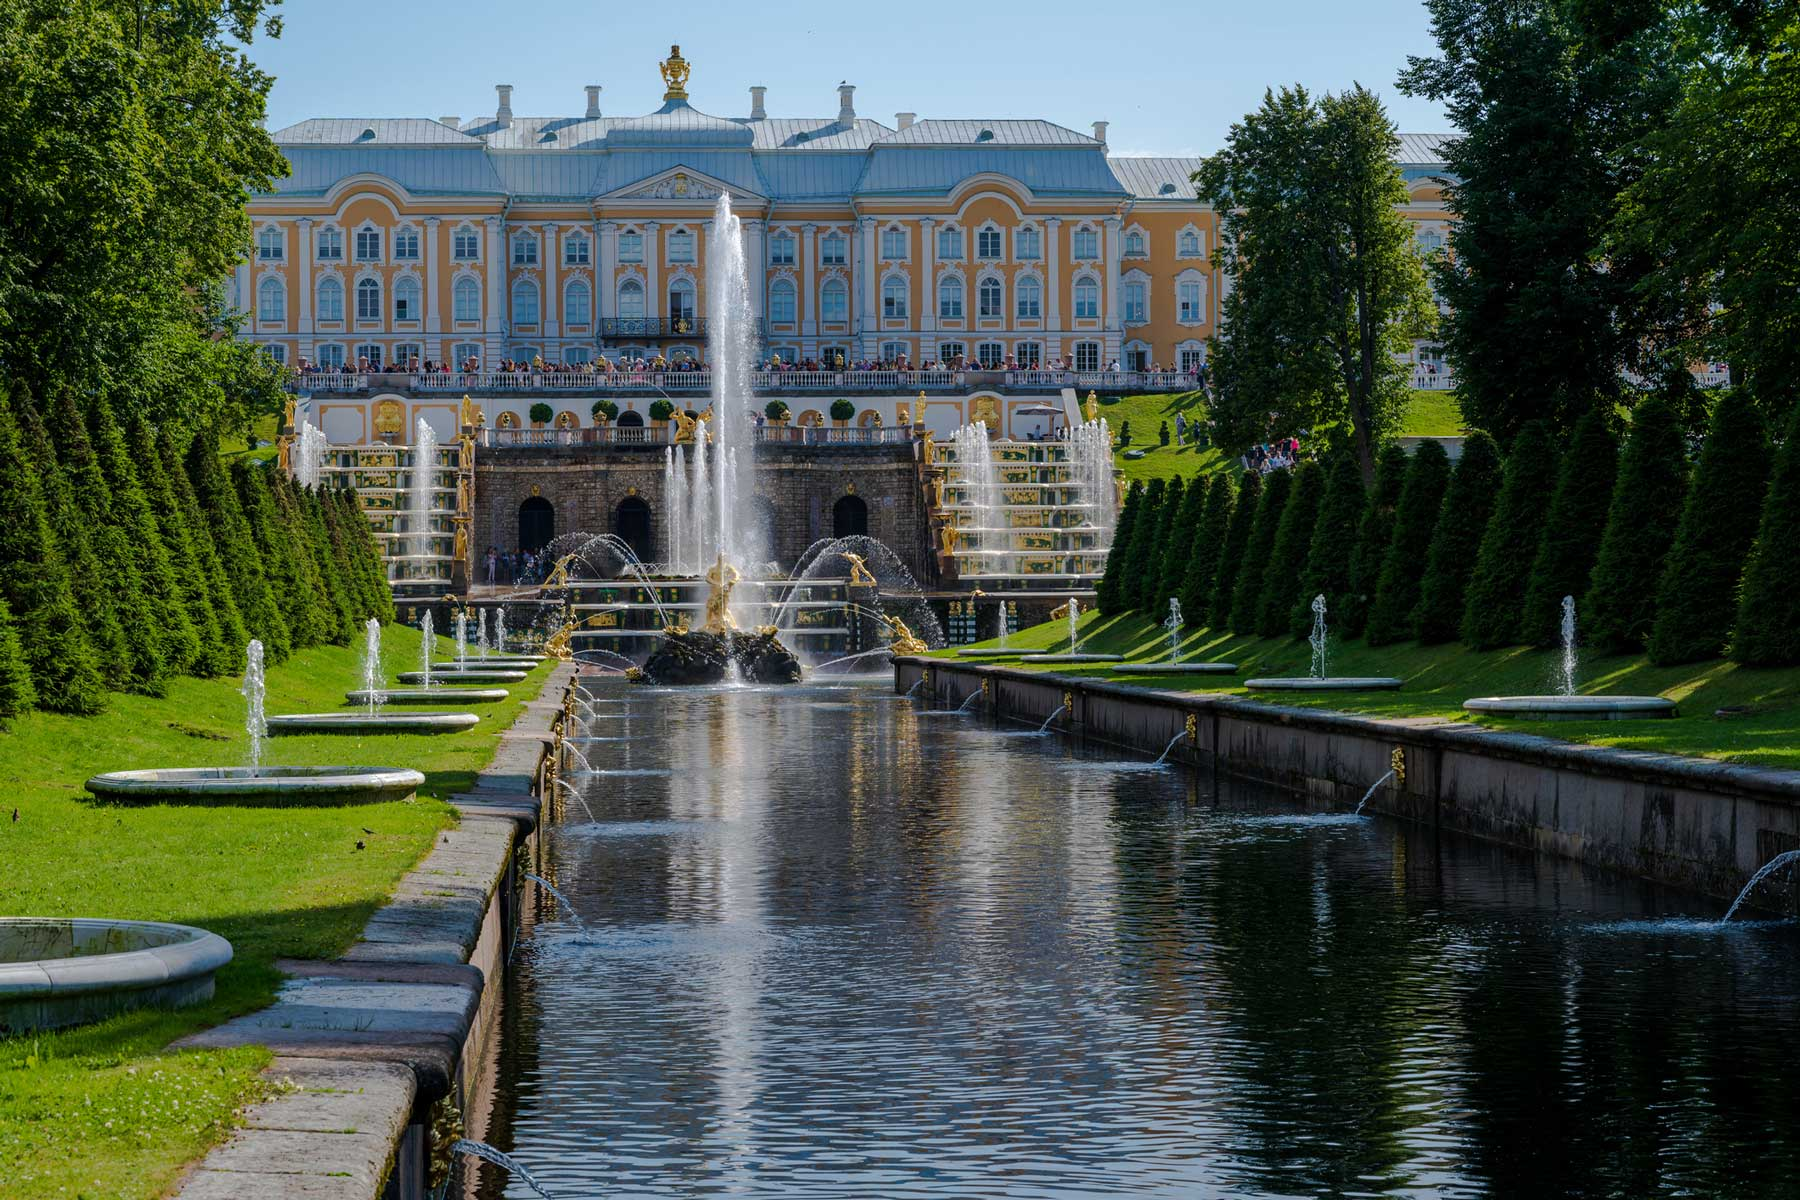 Photo of the fountain and gardens leading up to the Summer Palace of Peter the Great.